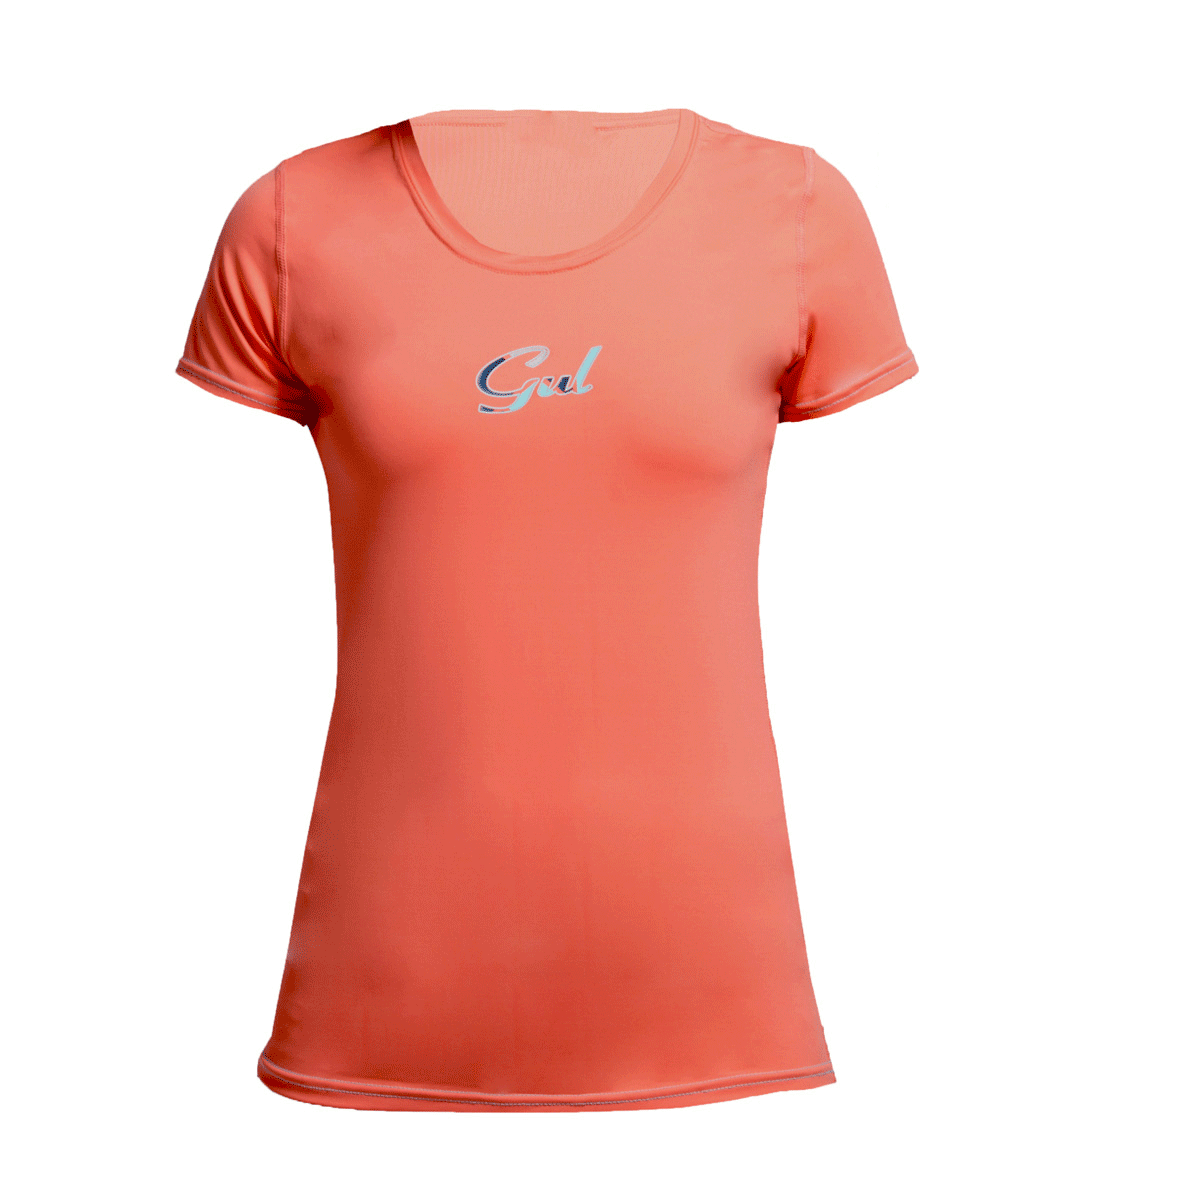 Gul Ladies Tee Fit Rashguard   Rg0367-B2